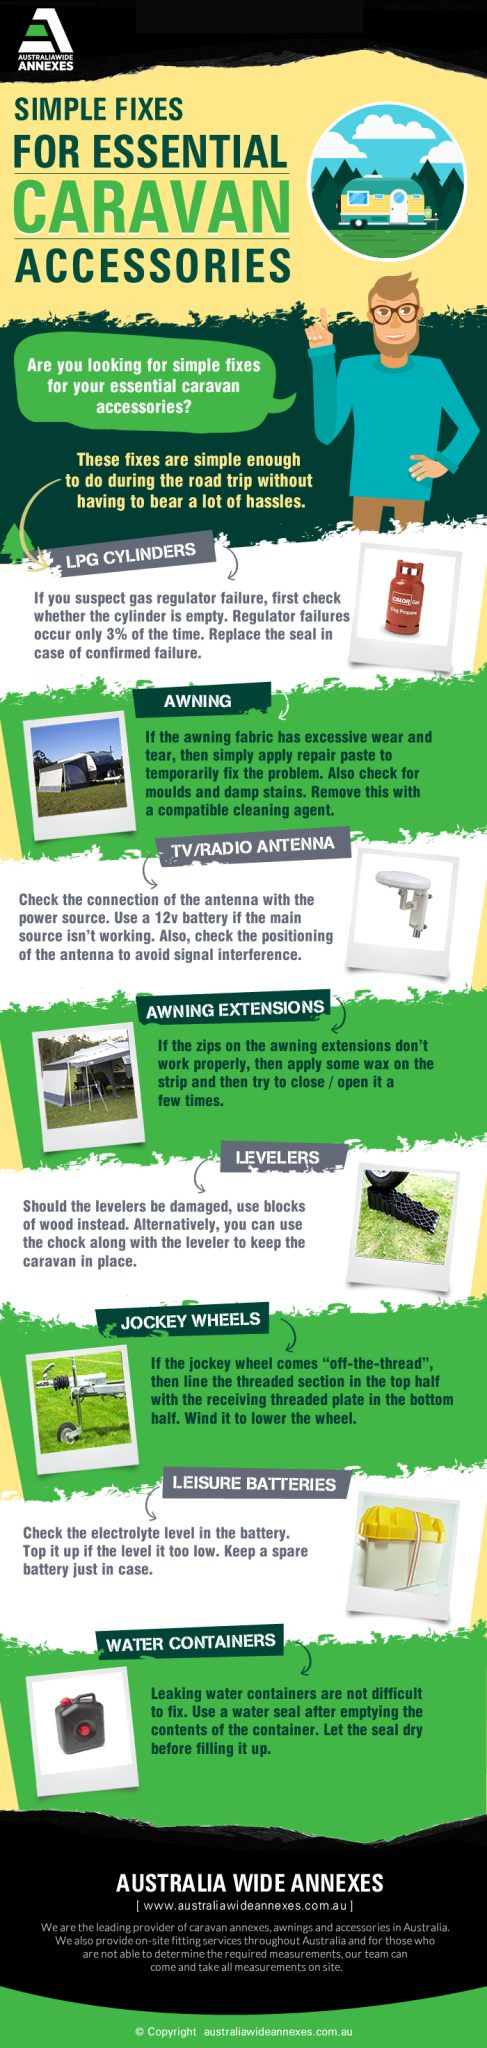 Essential Fixes for Caravan Accessories [Infographic]